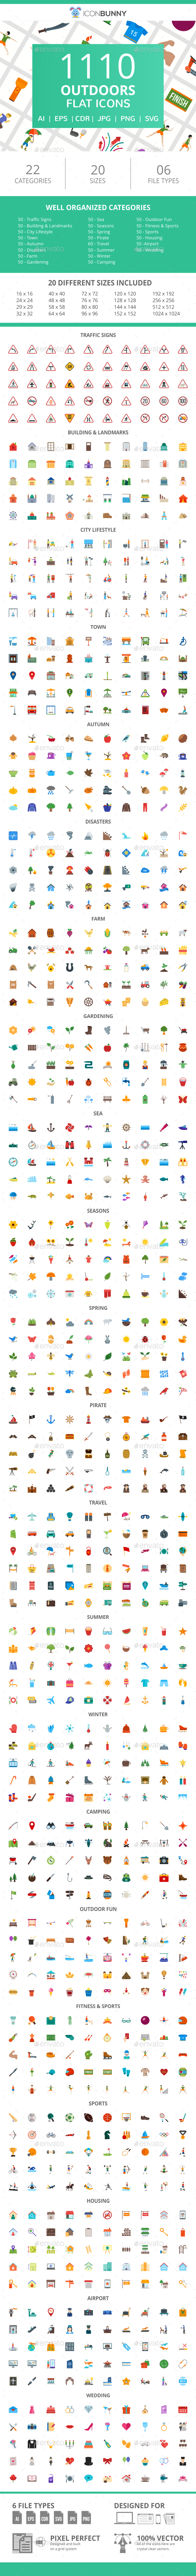 1110 Outdoors Flat Icons - Icons